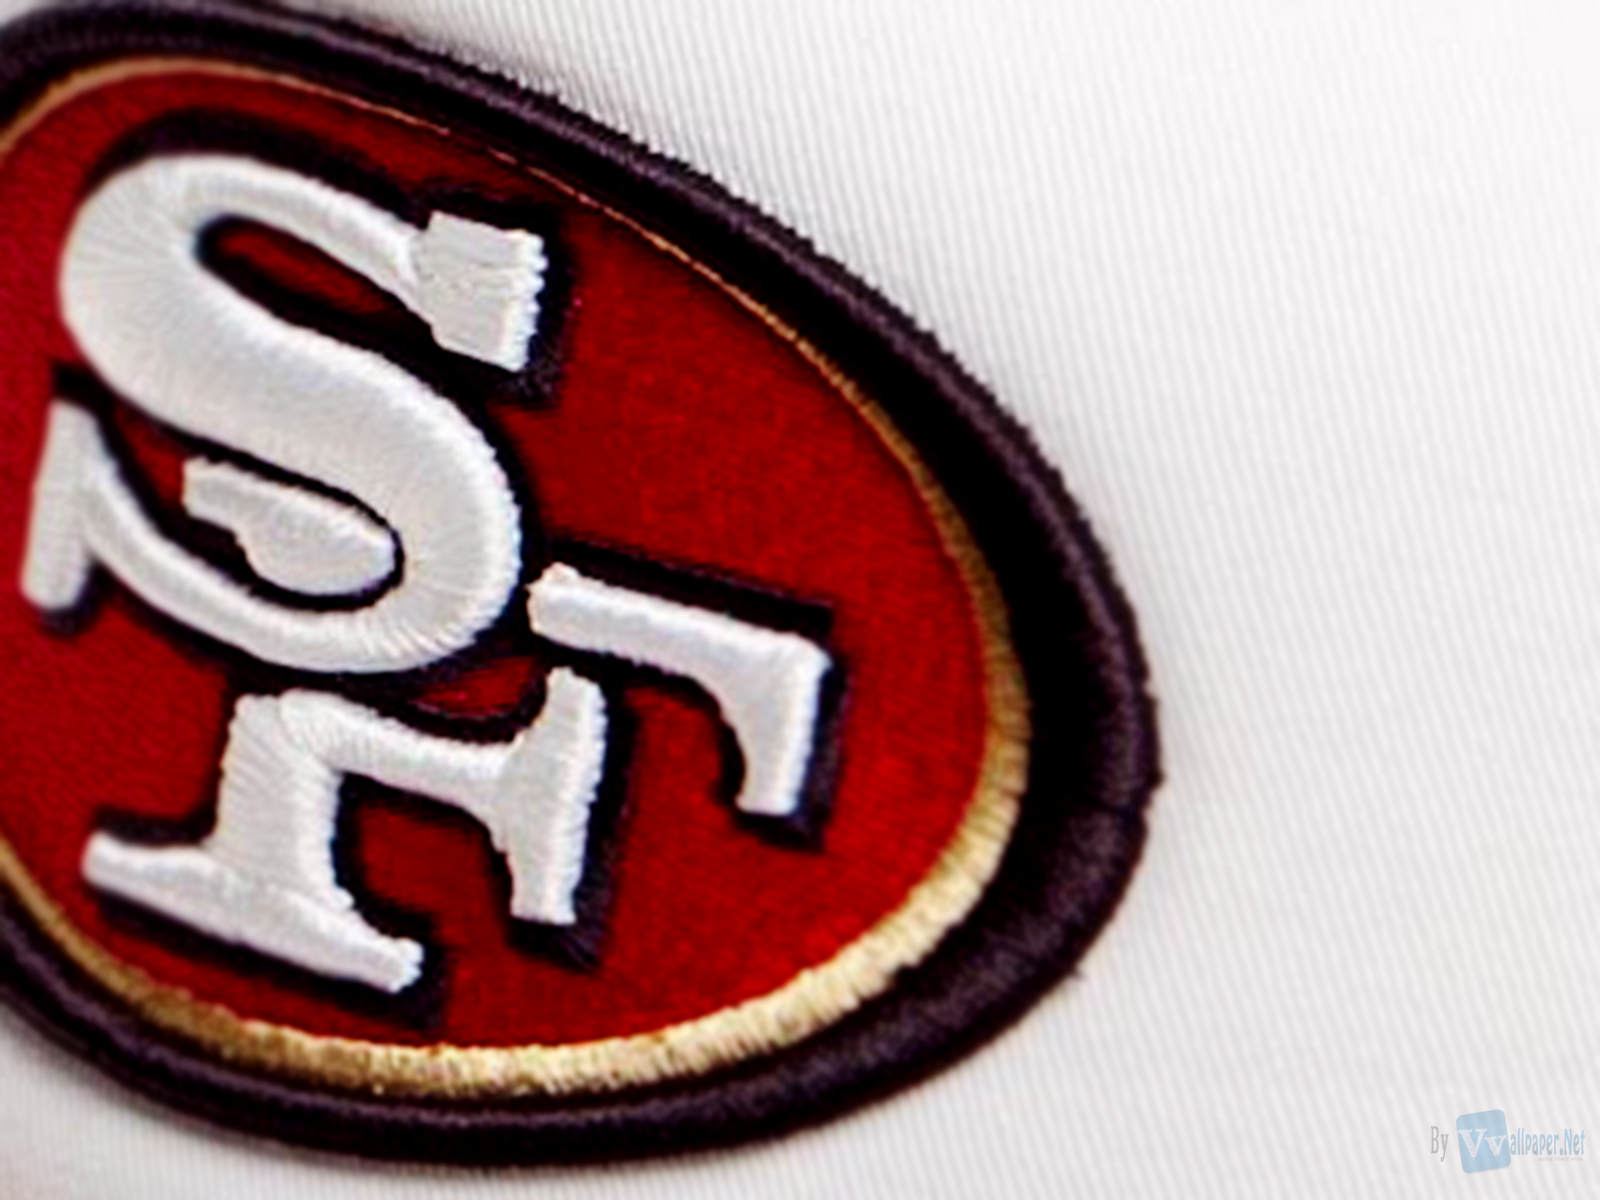 Francisco 49ers Nfl Team HD Wallpapers Download Wallpapers in 1600x1200